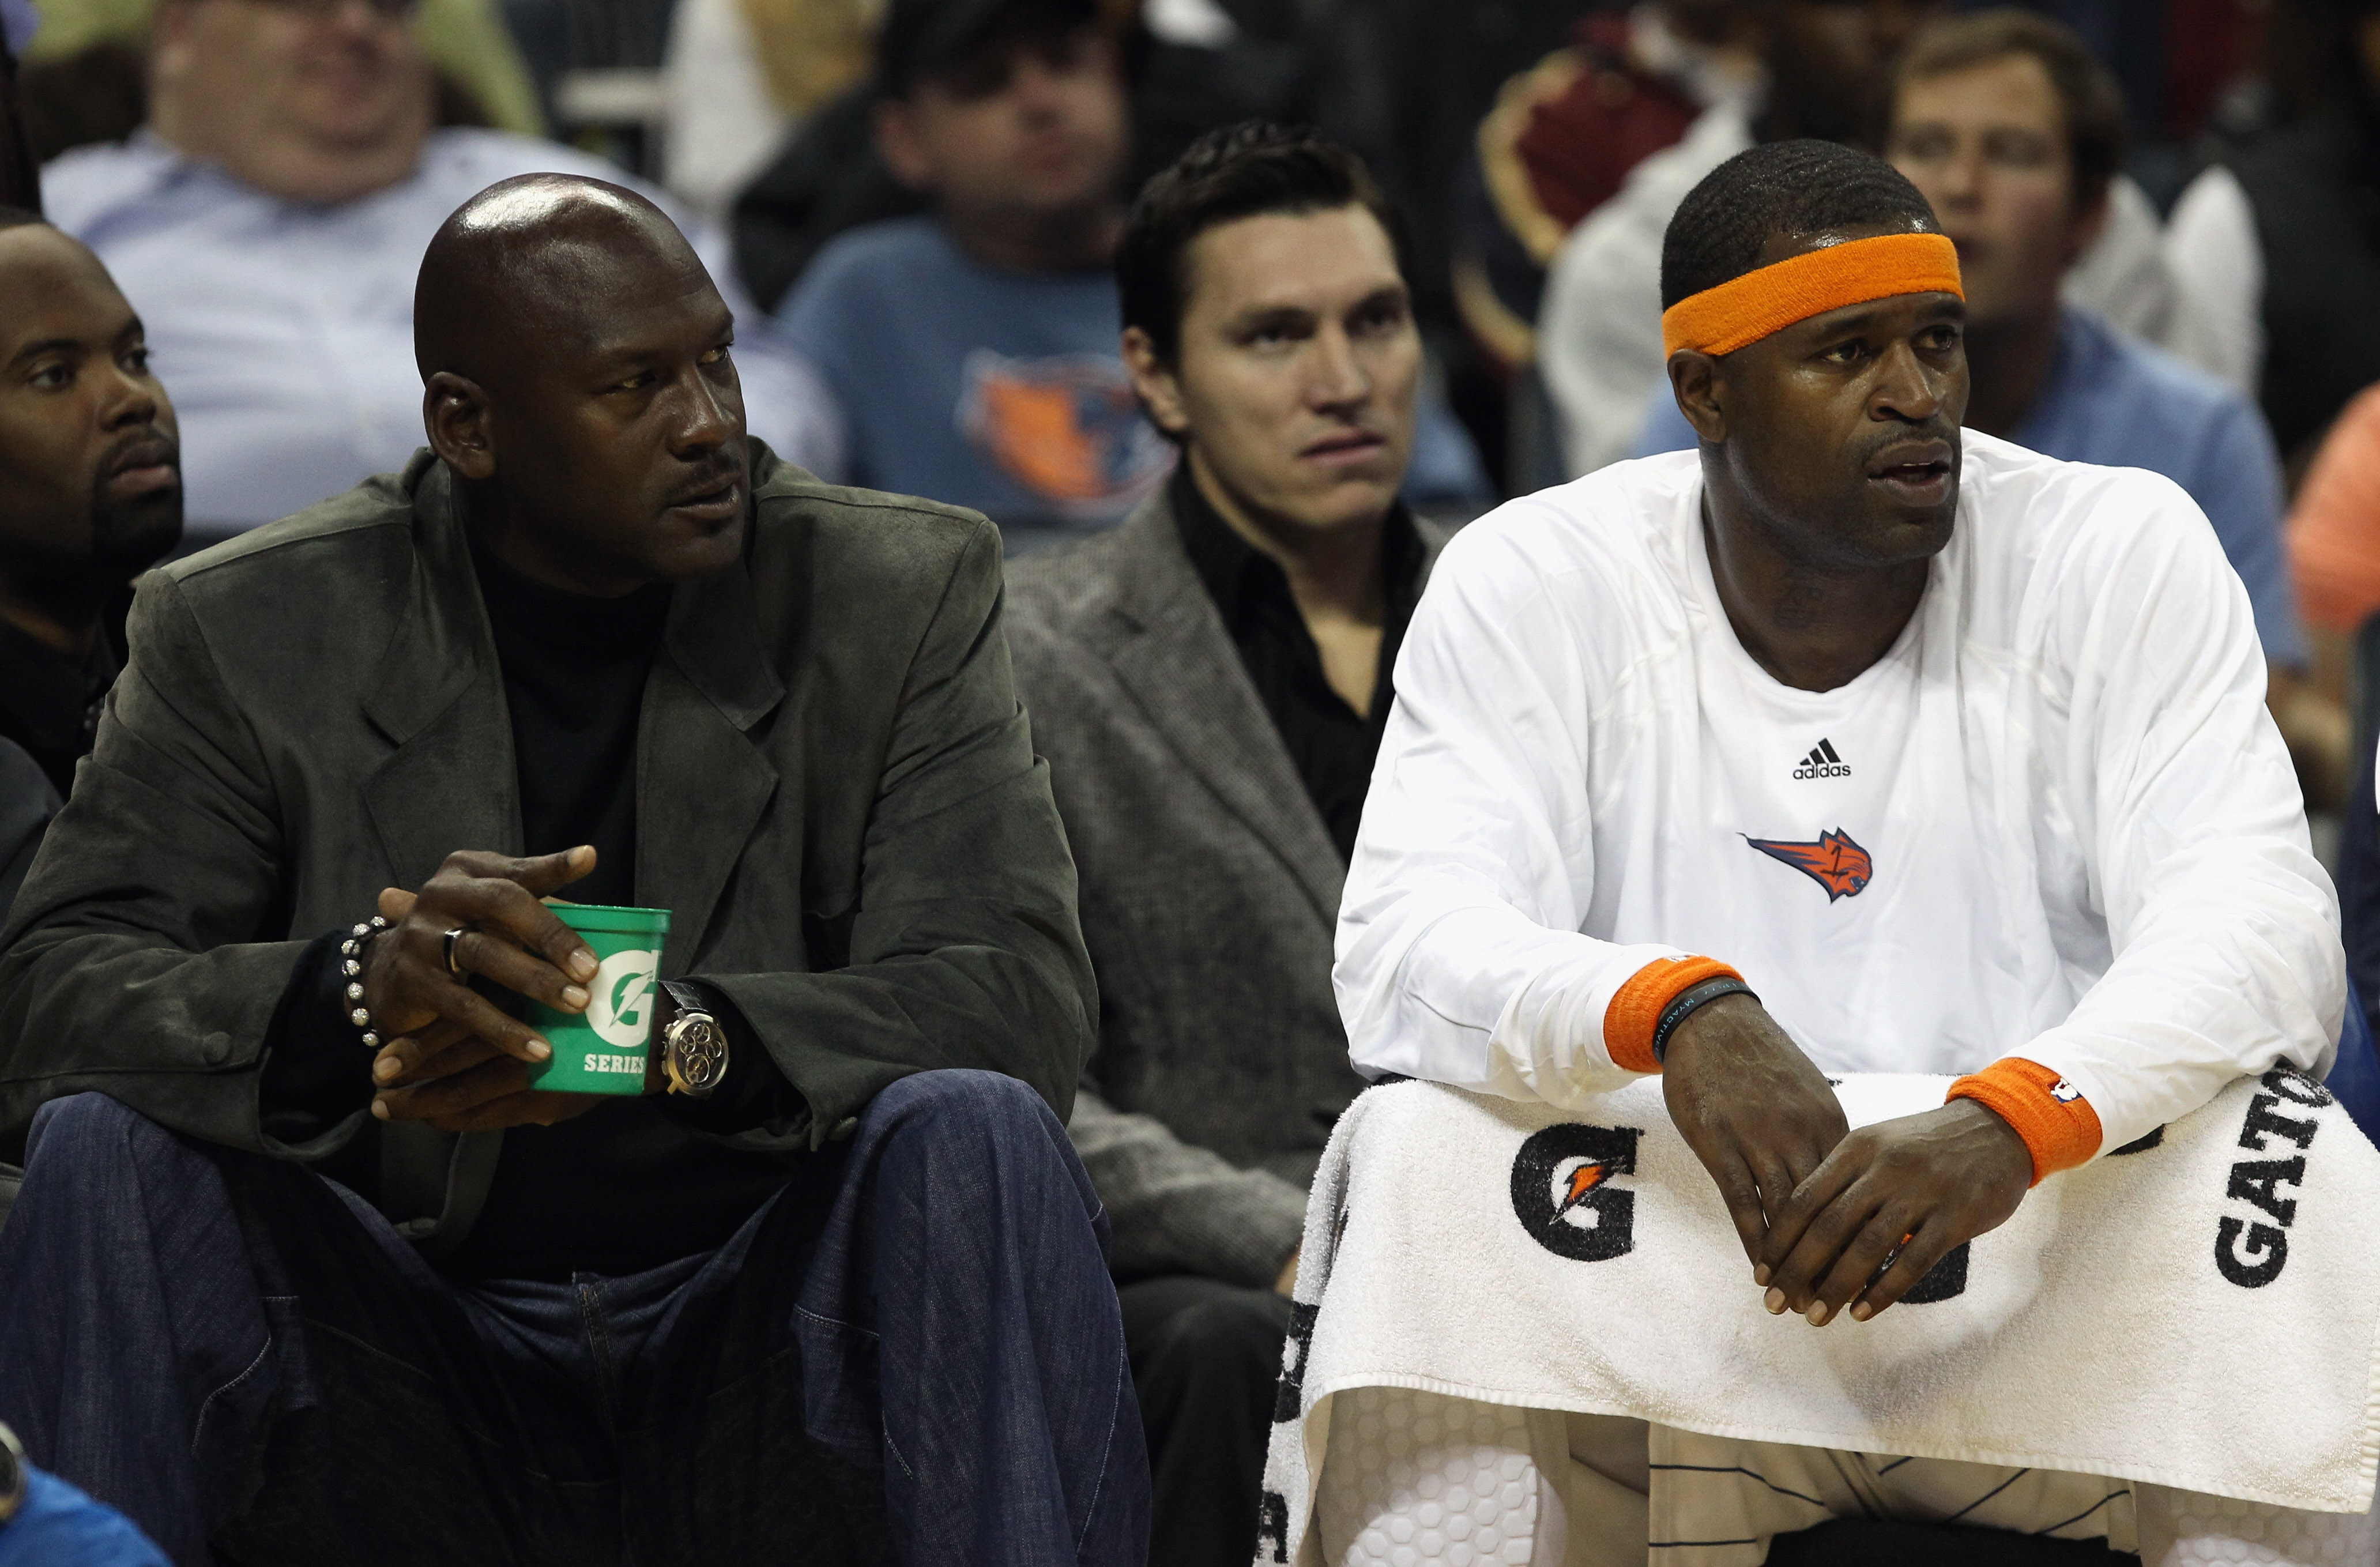 CHARLOTTE, NC - NOVEMBER 08:  Michael Jordan, owner of the Charlotte Bobcats, sits on the bench with Stephen Jackson #1 during their game against the San Antonio Spurs at Time Warner Cable Arena on November 8, 2010 in Charlotte, North Carolina.  NOTE TO U